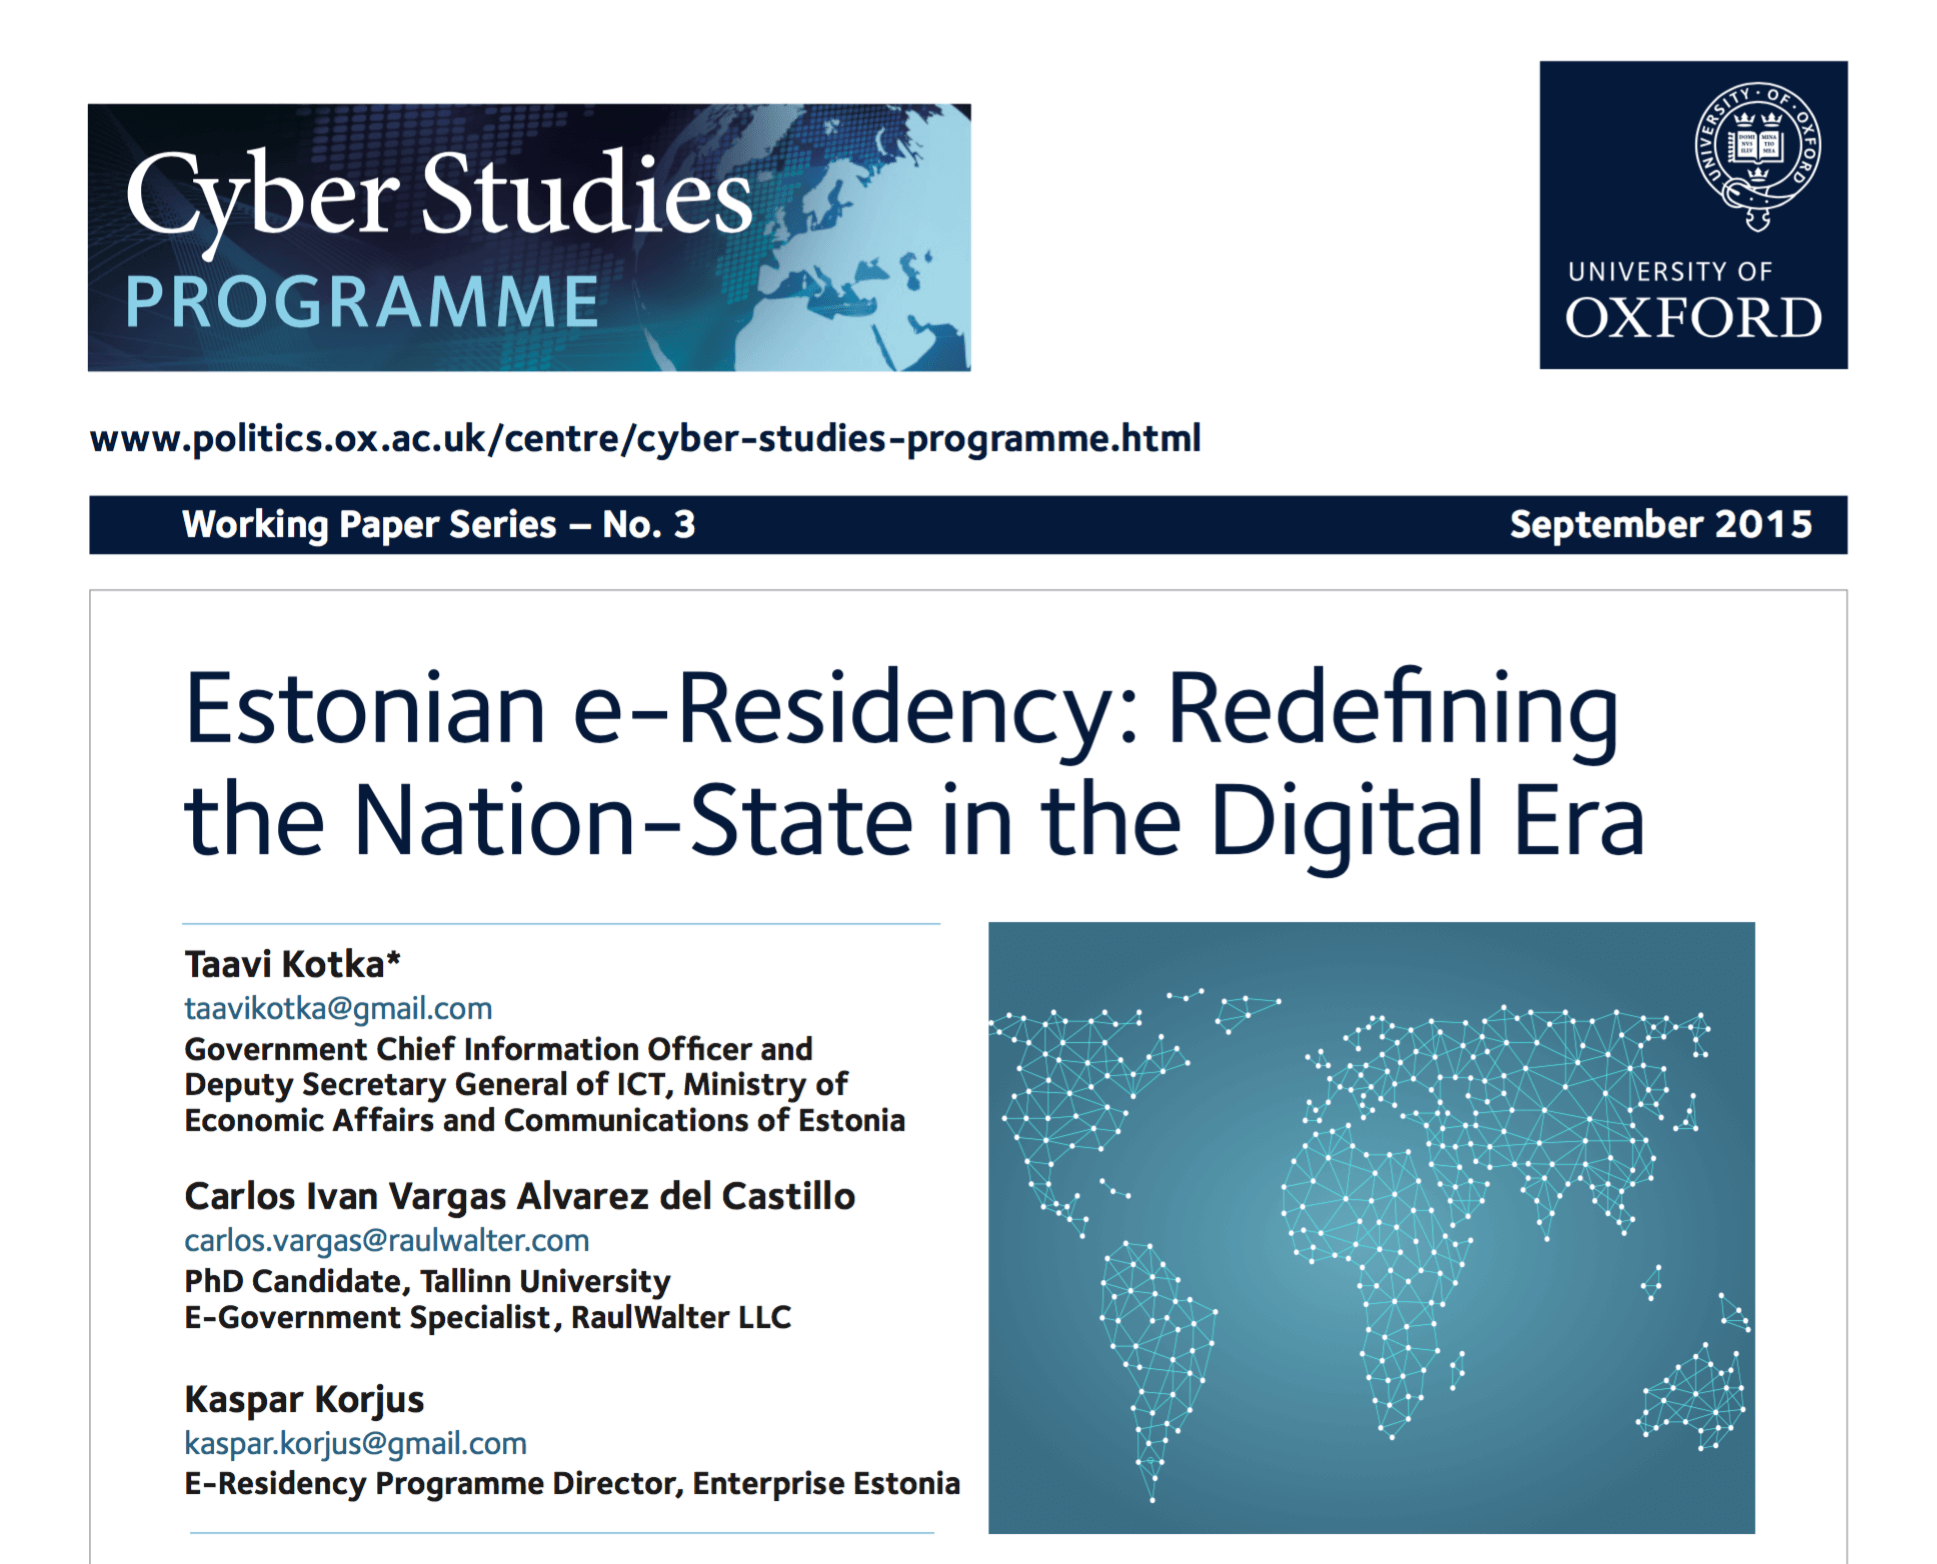 Estonian e-Residency: Redefining the Nation-State in the Digital Era preview image